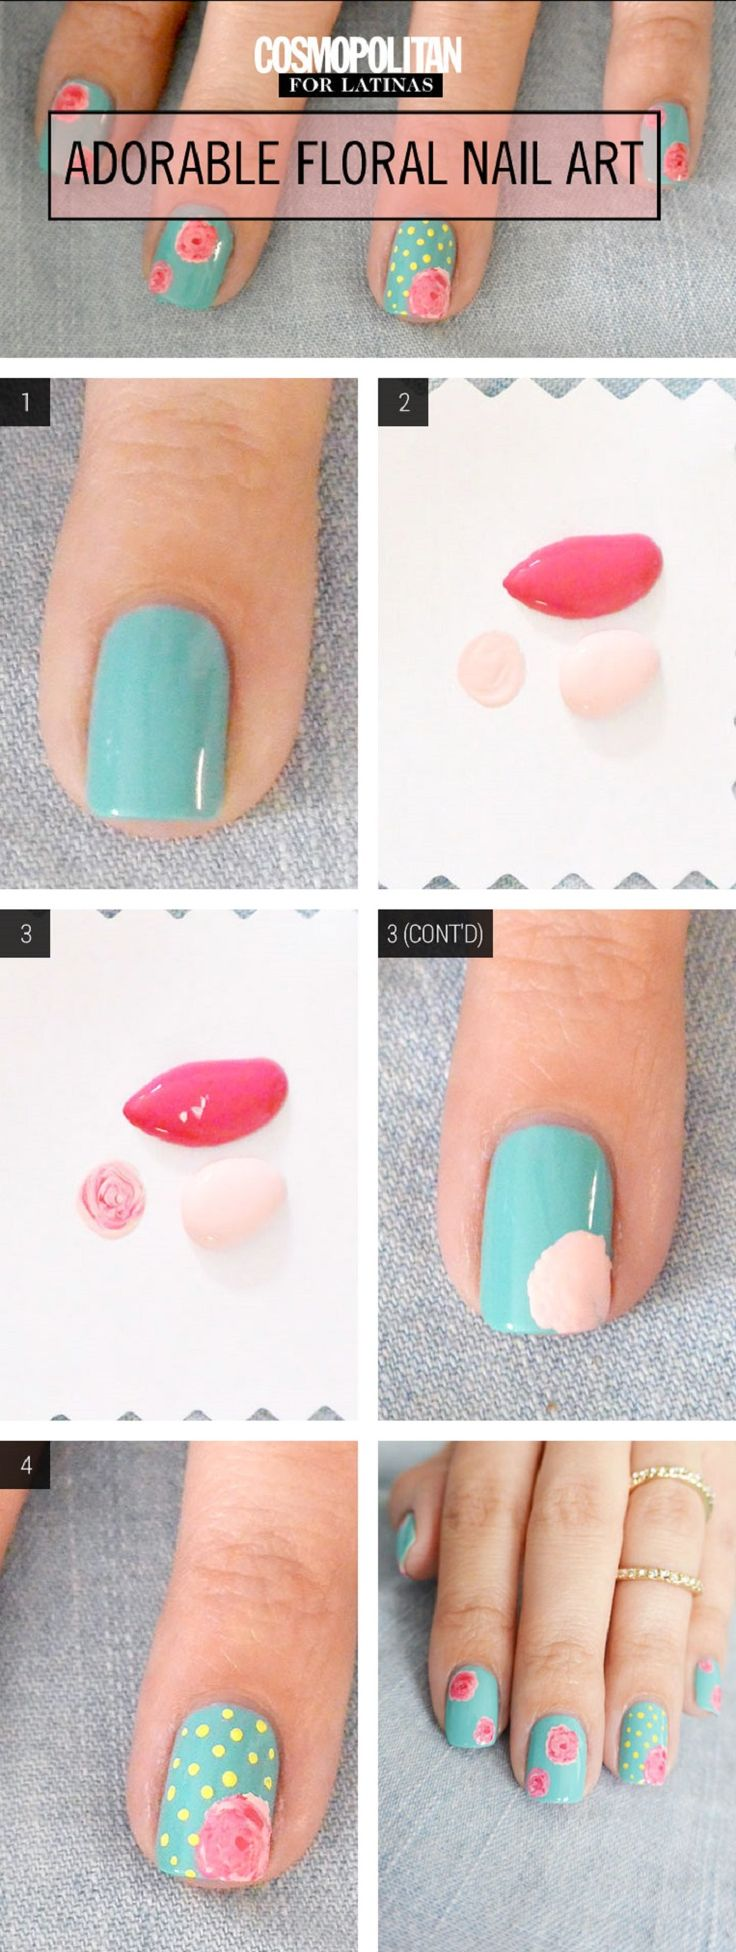 Pretty Floral Manicure - 11 Vibrant Nail Art Tutorials that Scream Summer | GleamItUp